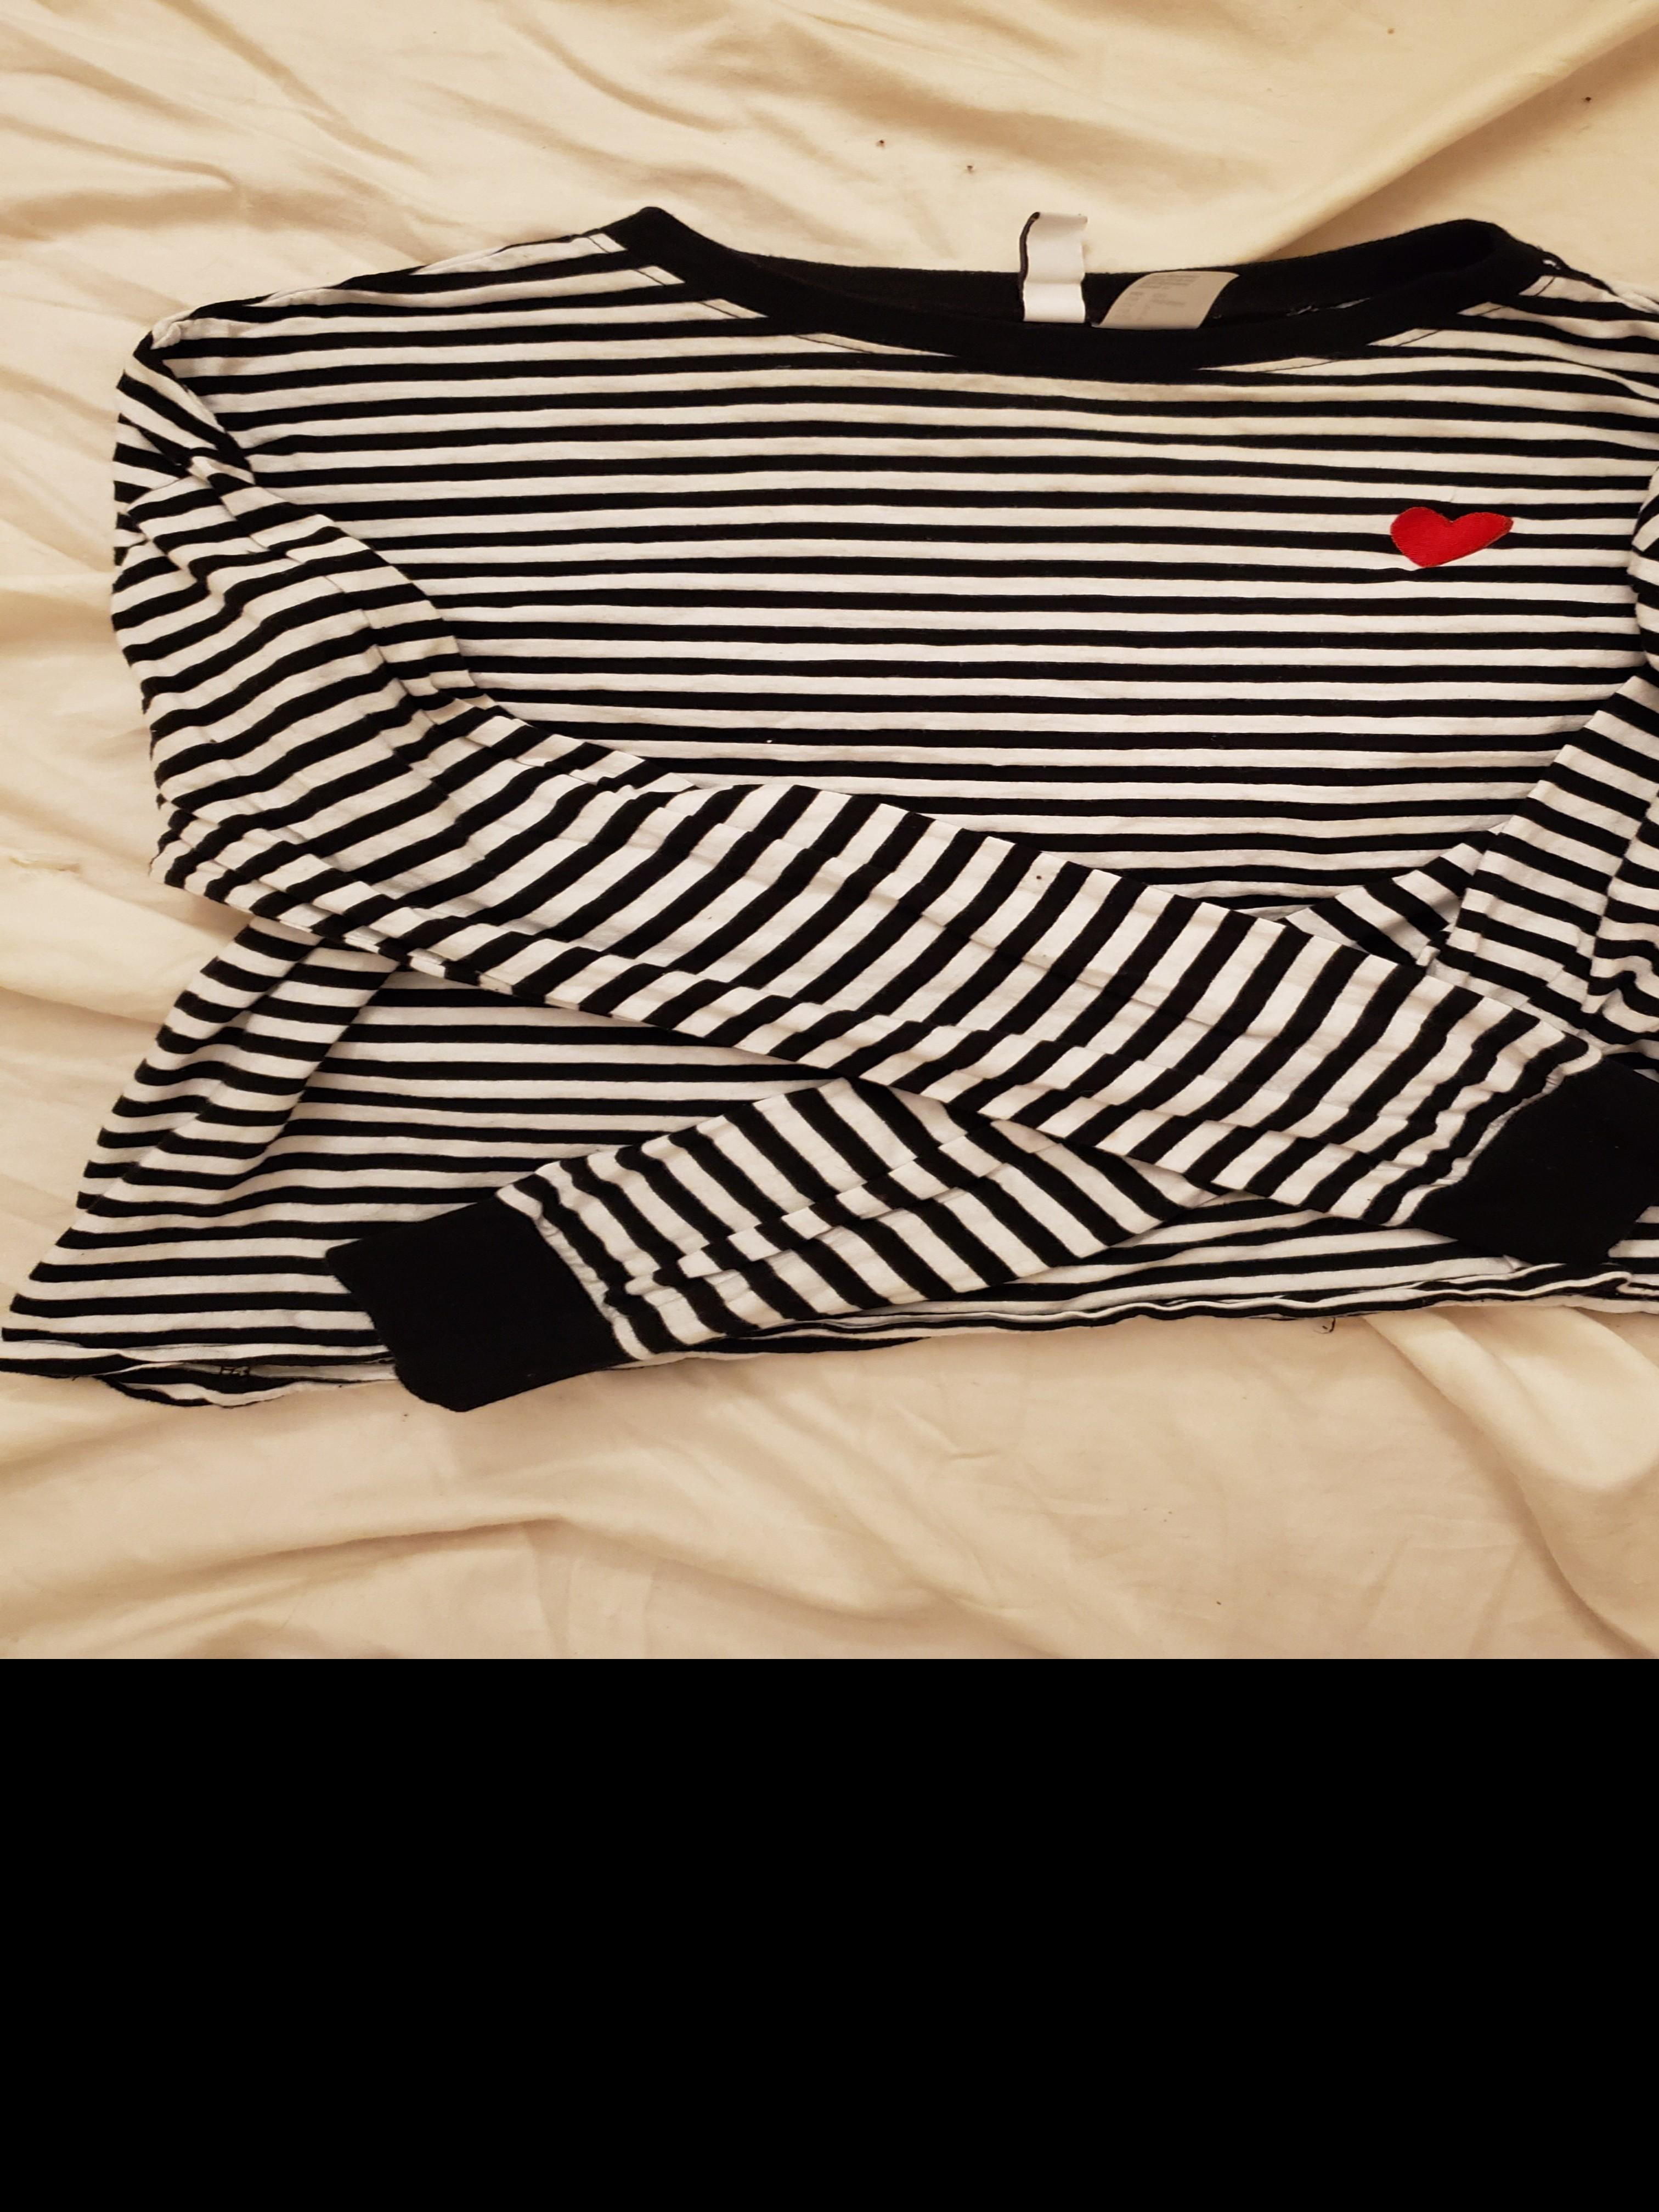 H&M striped long sleeve crop top black and white with red heart size small